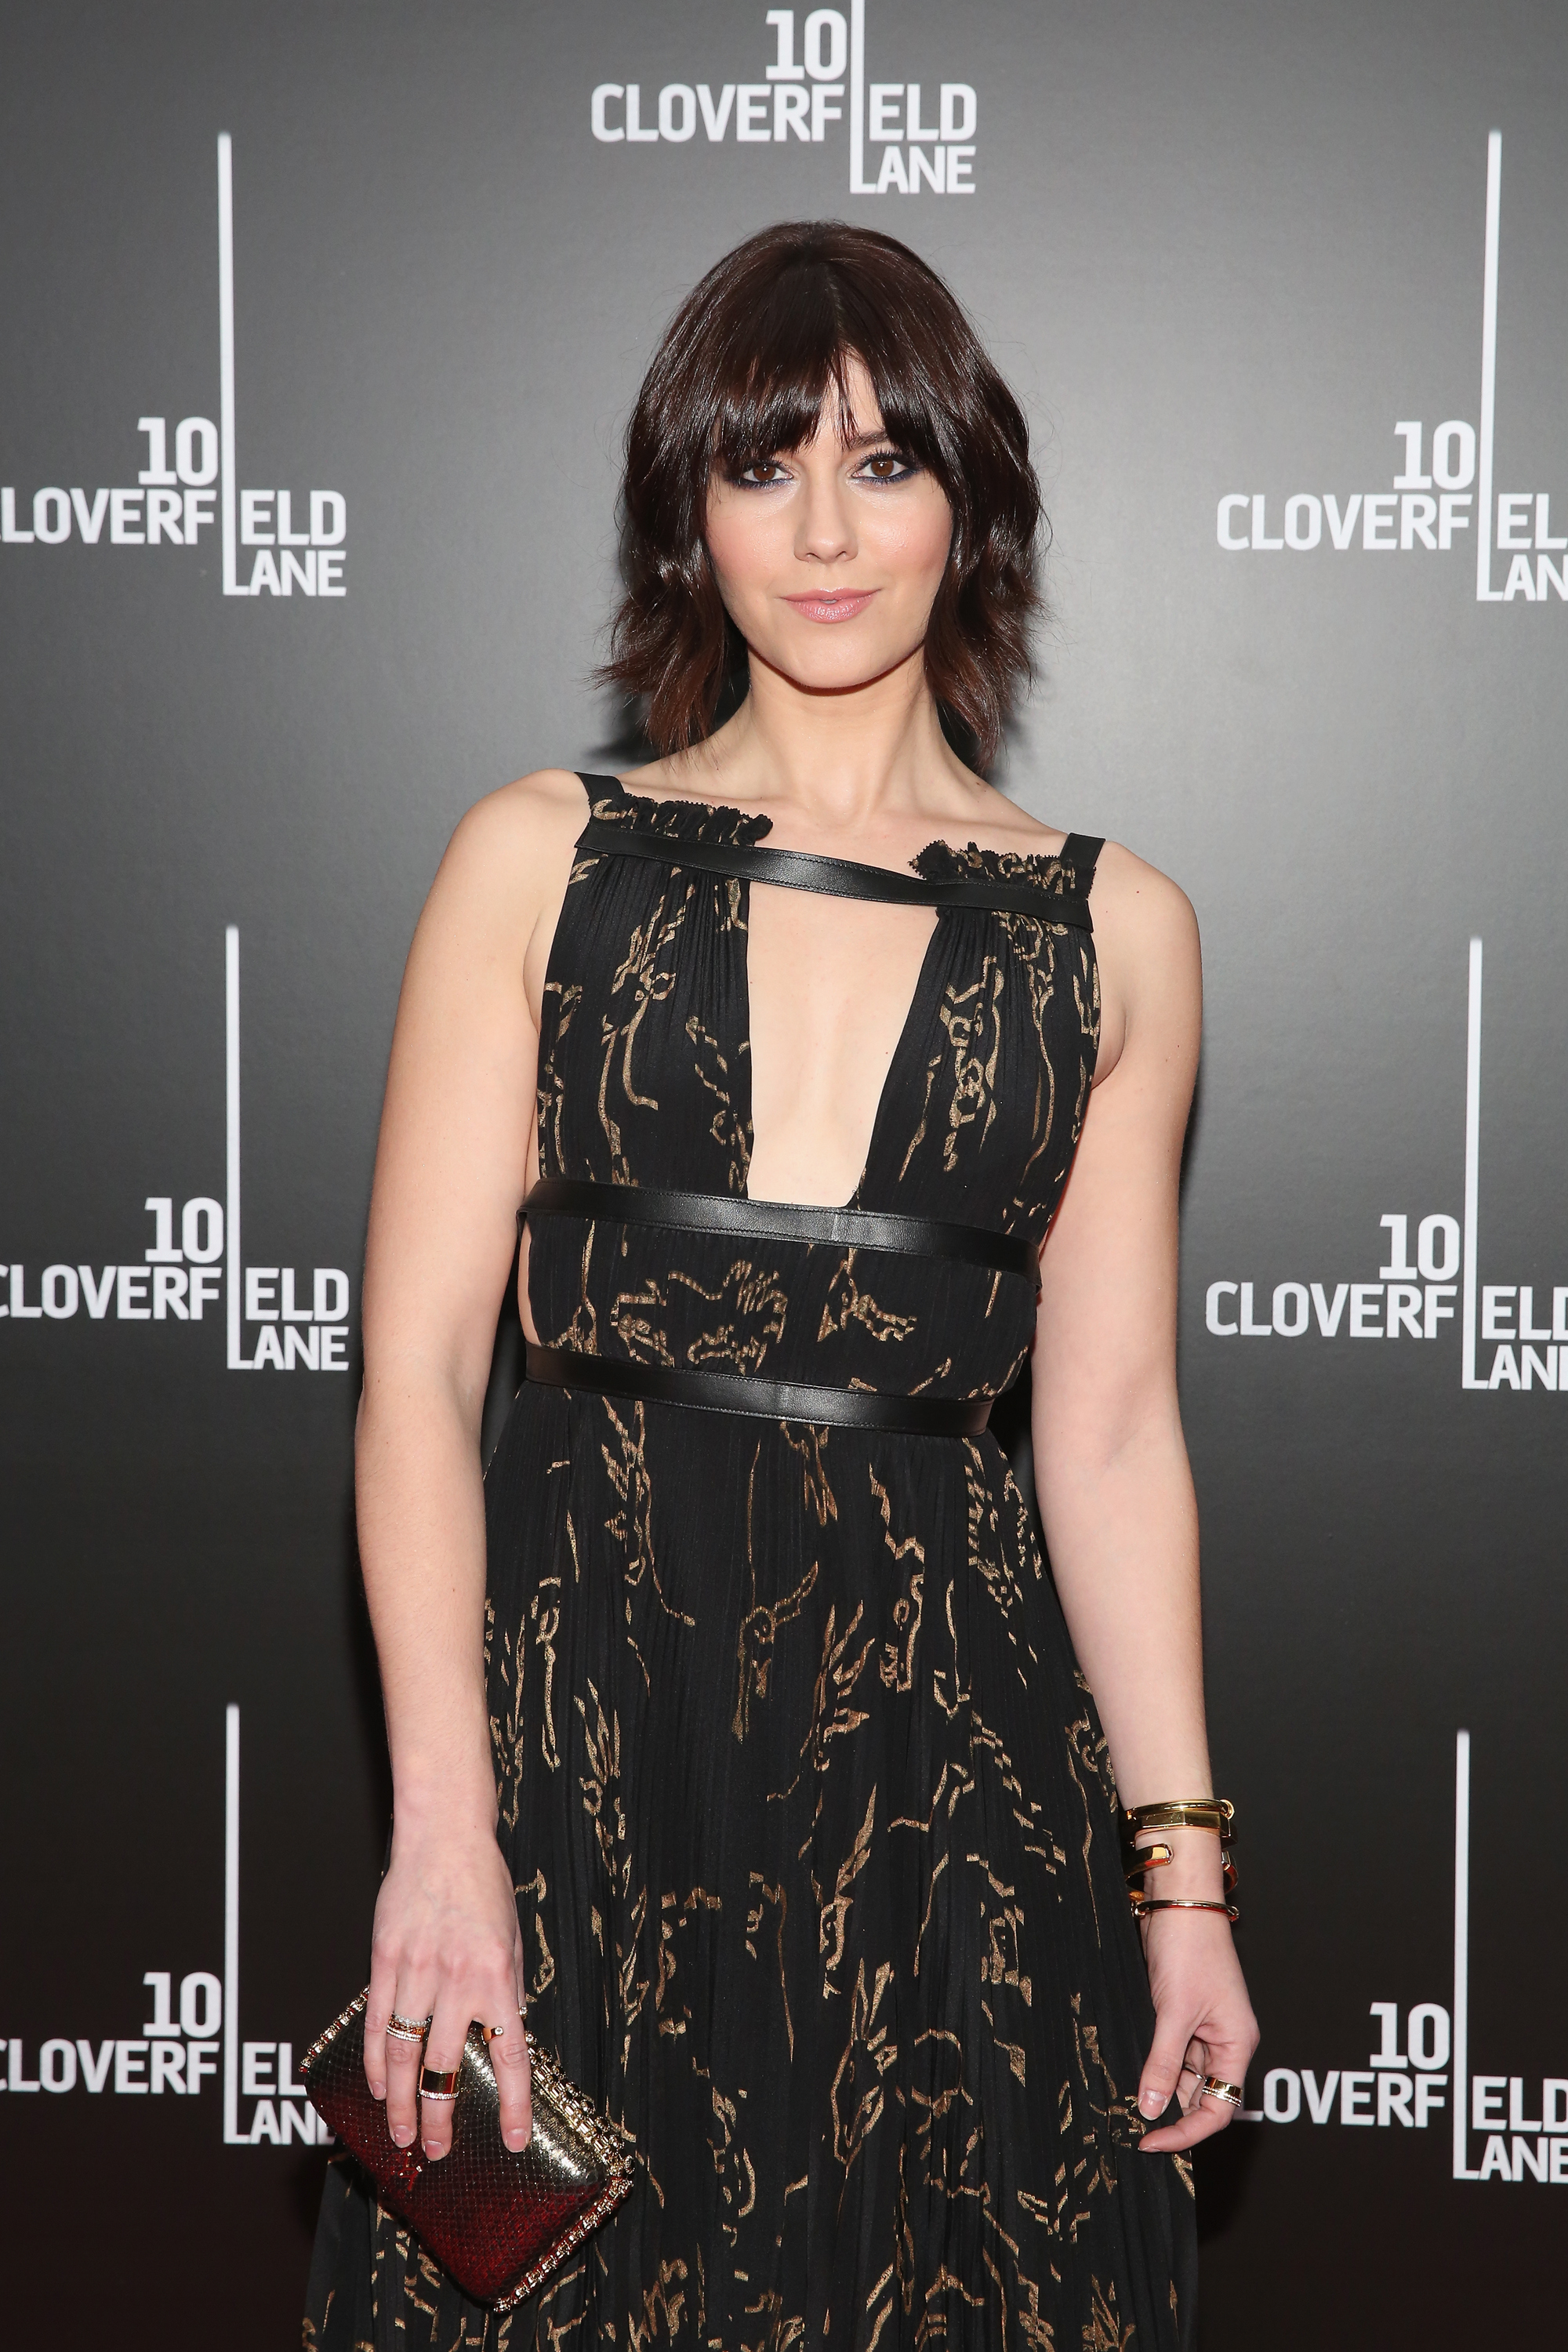 Mary Elizabeth Winstead attends the premiere of  10 Cloverfield Lane  on March 8, 2016 in New York City.